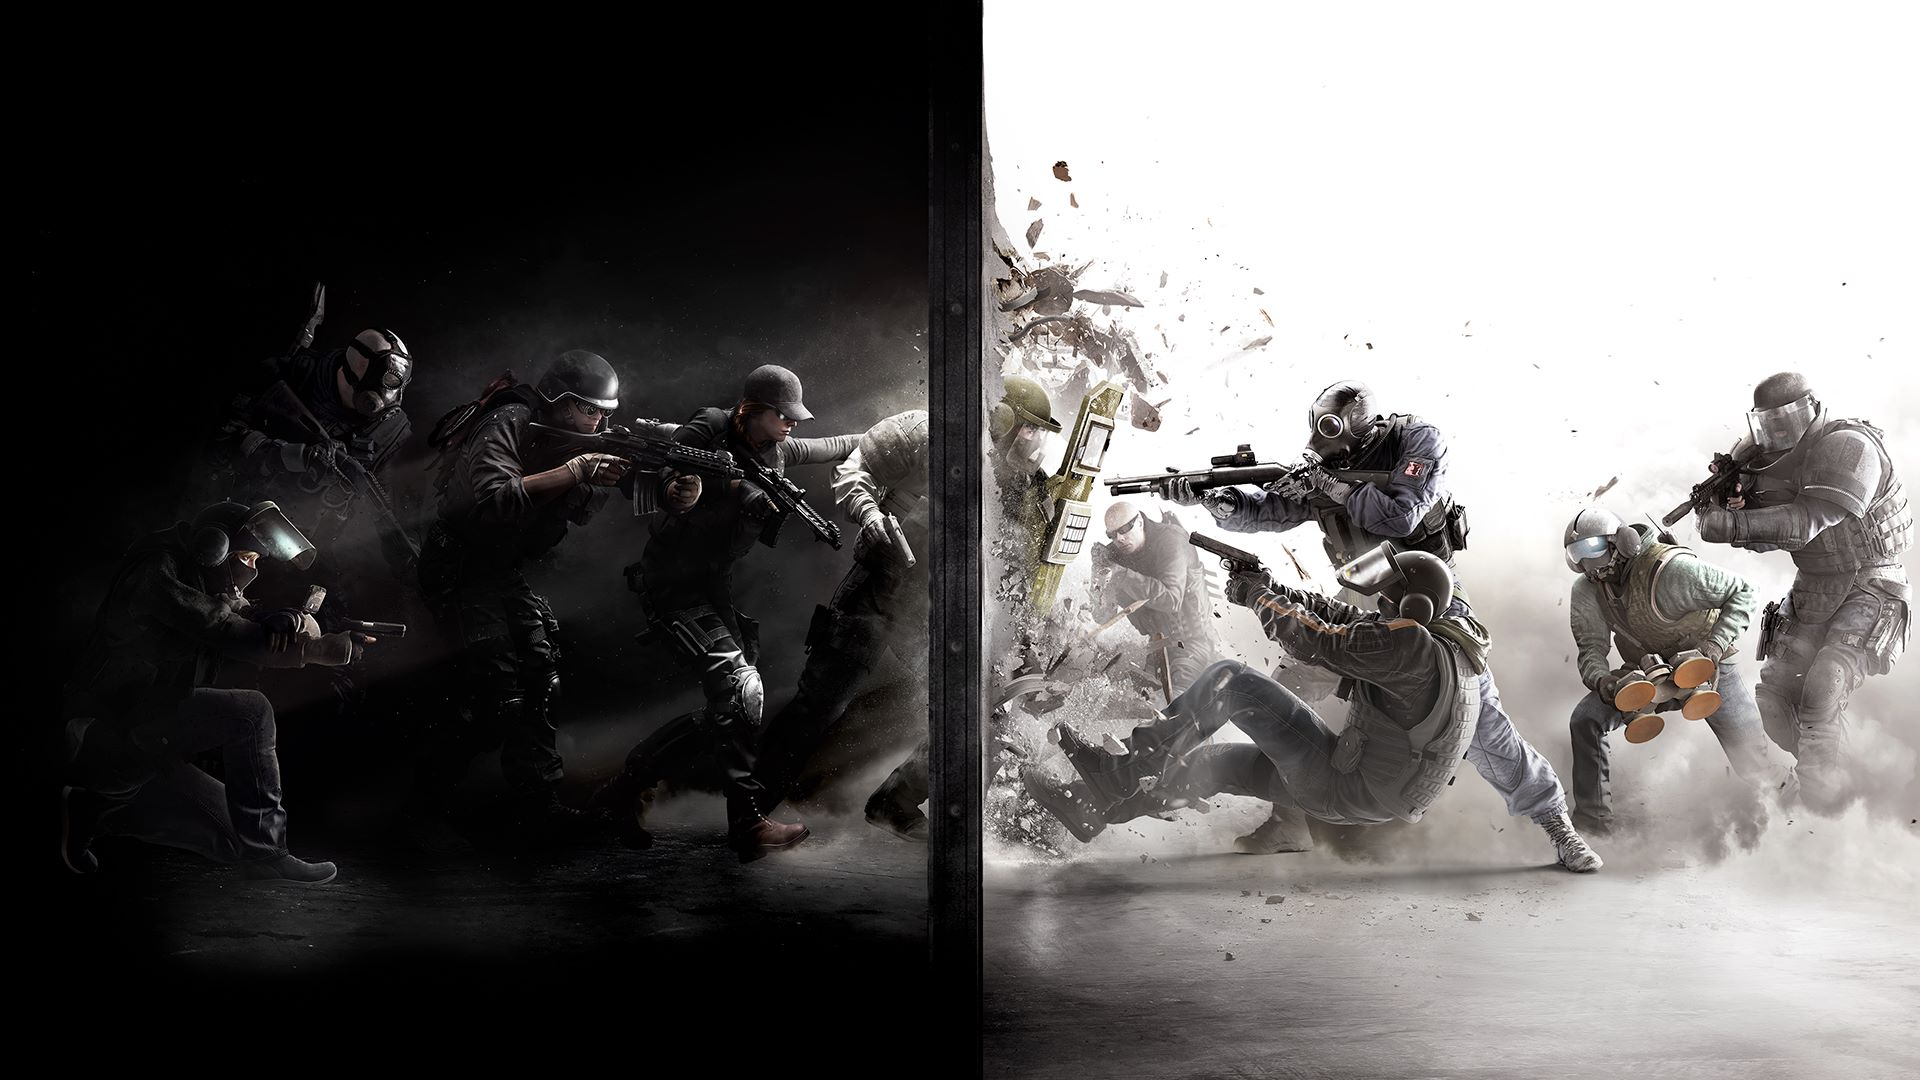 General 1920x1080 Rainbow 6: Siege military games art Video Game Art